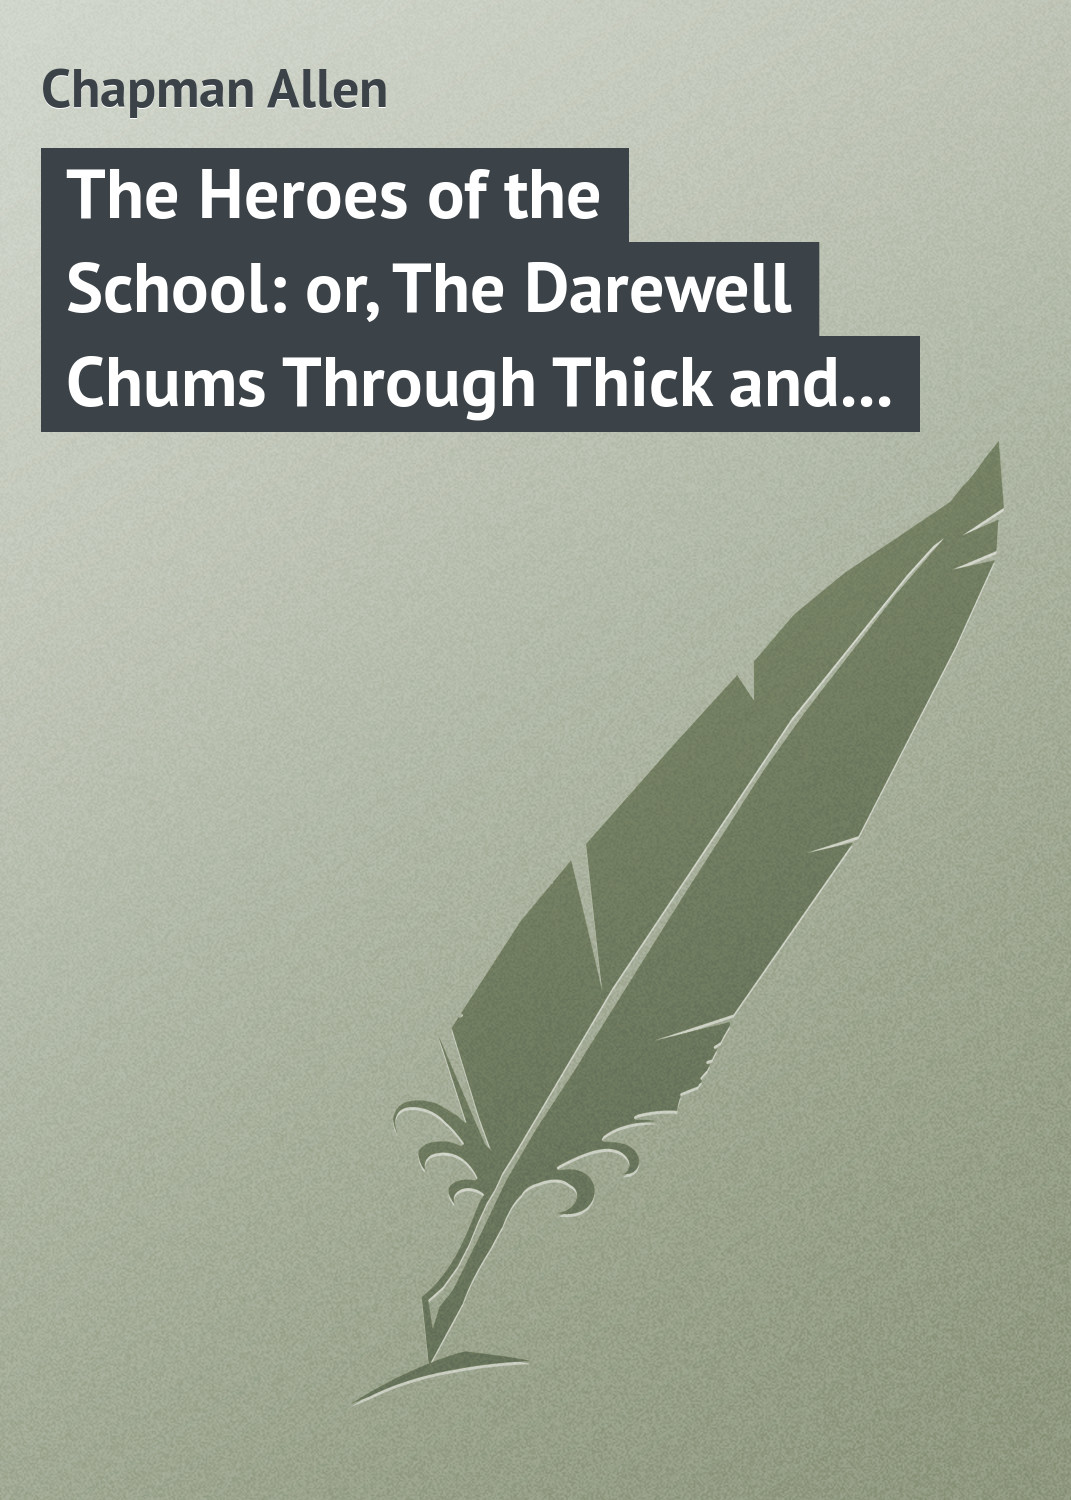 купить Chapman Allen The Heroes of the School: or, The Darewell Chums Through Thick and Thin по цене 0 рублей